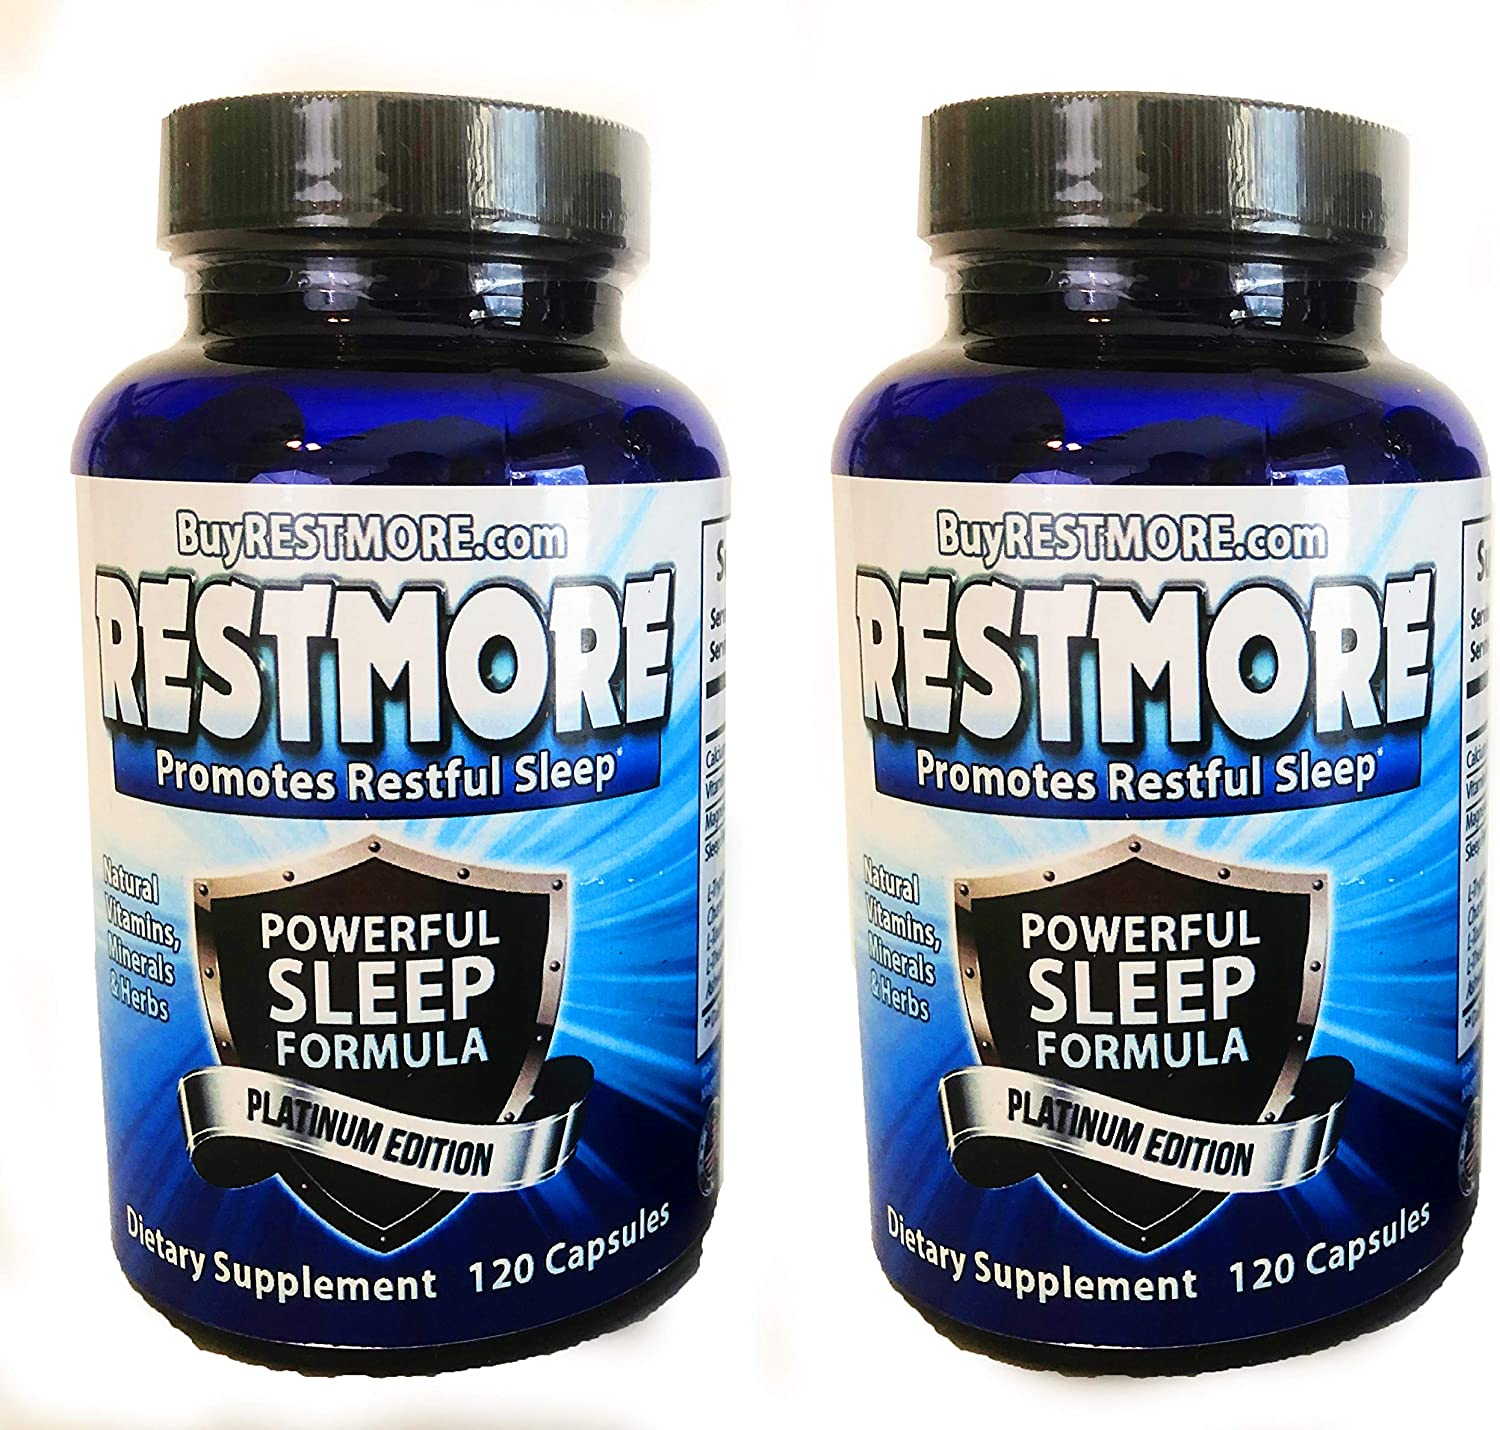 RESTMORE 120 Day